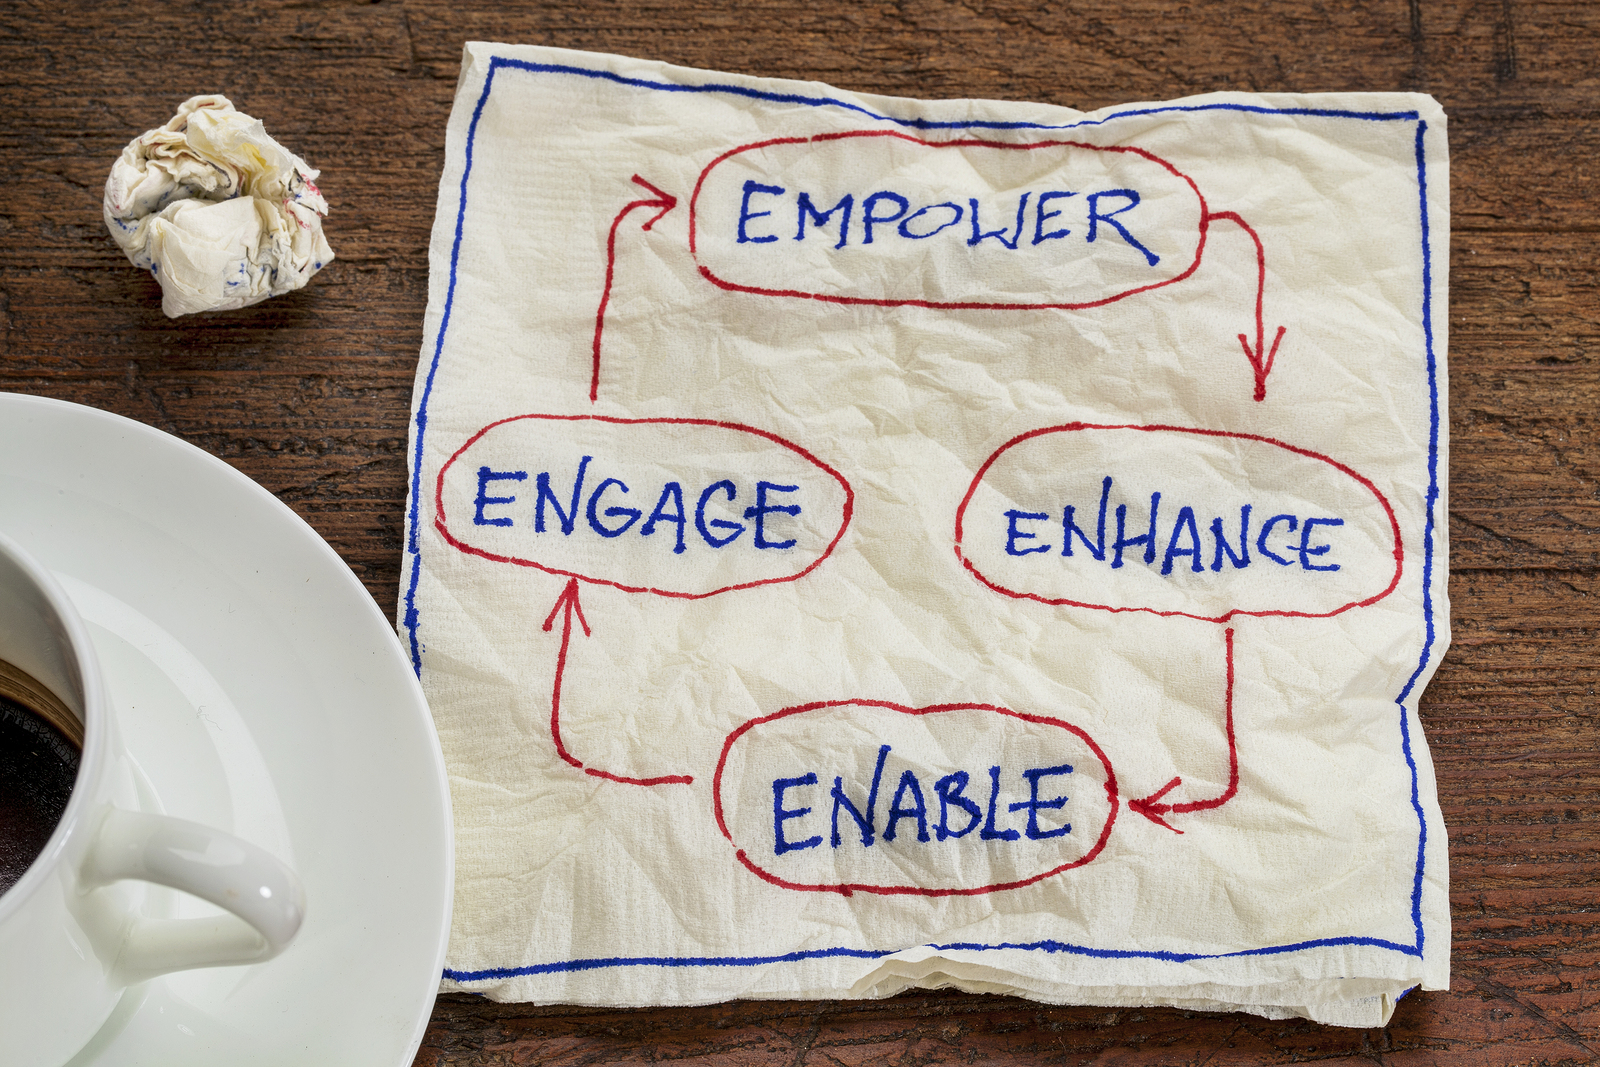 employee engagement empower enhance enable and engage